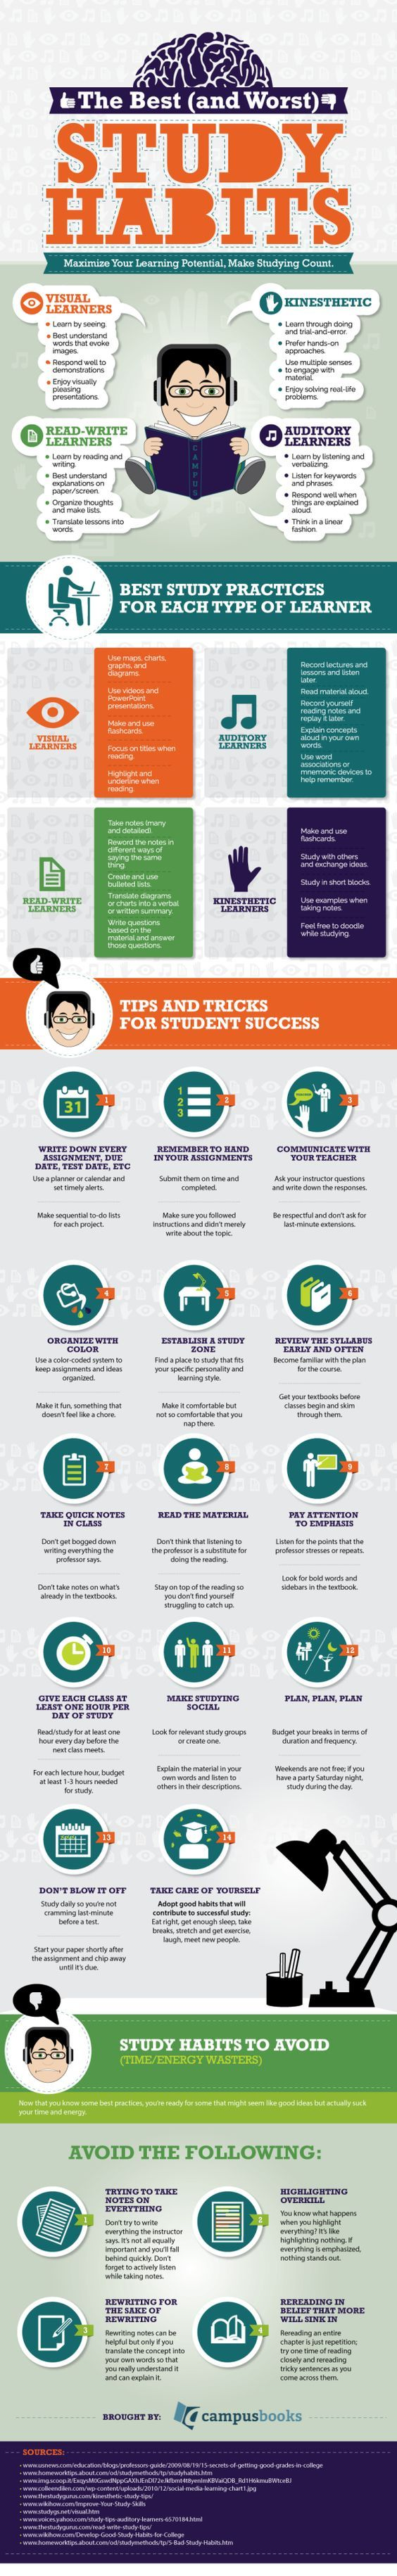 Tips and tricks for student success, wish they had given me one of these in High School!